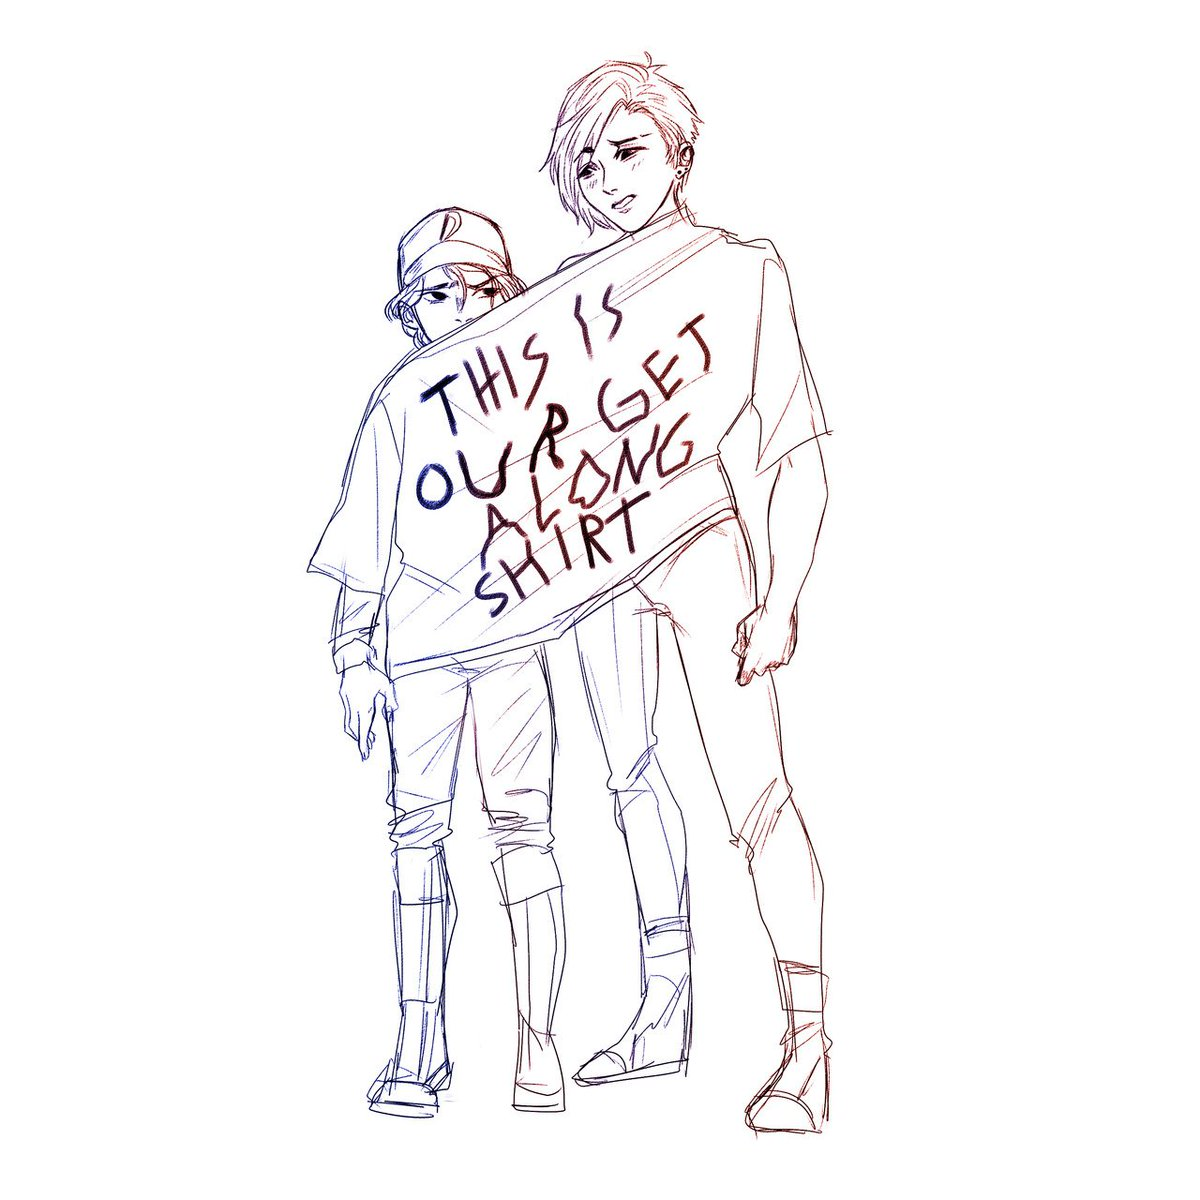 I got to write a bunch of Minnie in ep 3 (and some in ep 4!) of #TWDG SO THIS IS MY FAVORITE.  art by @denkiJUNE  https:// denkijune.tumblr.com/post/184947920 251/thinking-about-their-height-difference-and-get   … <br>http://pic.twitter.com/rRiIuZjD3E